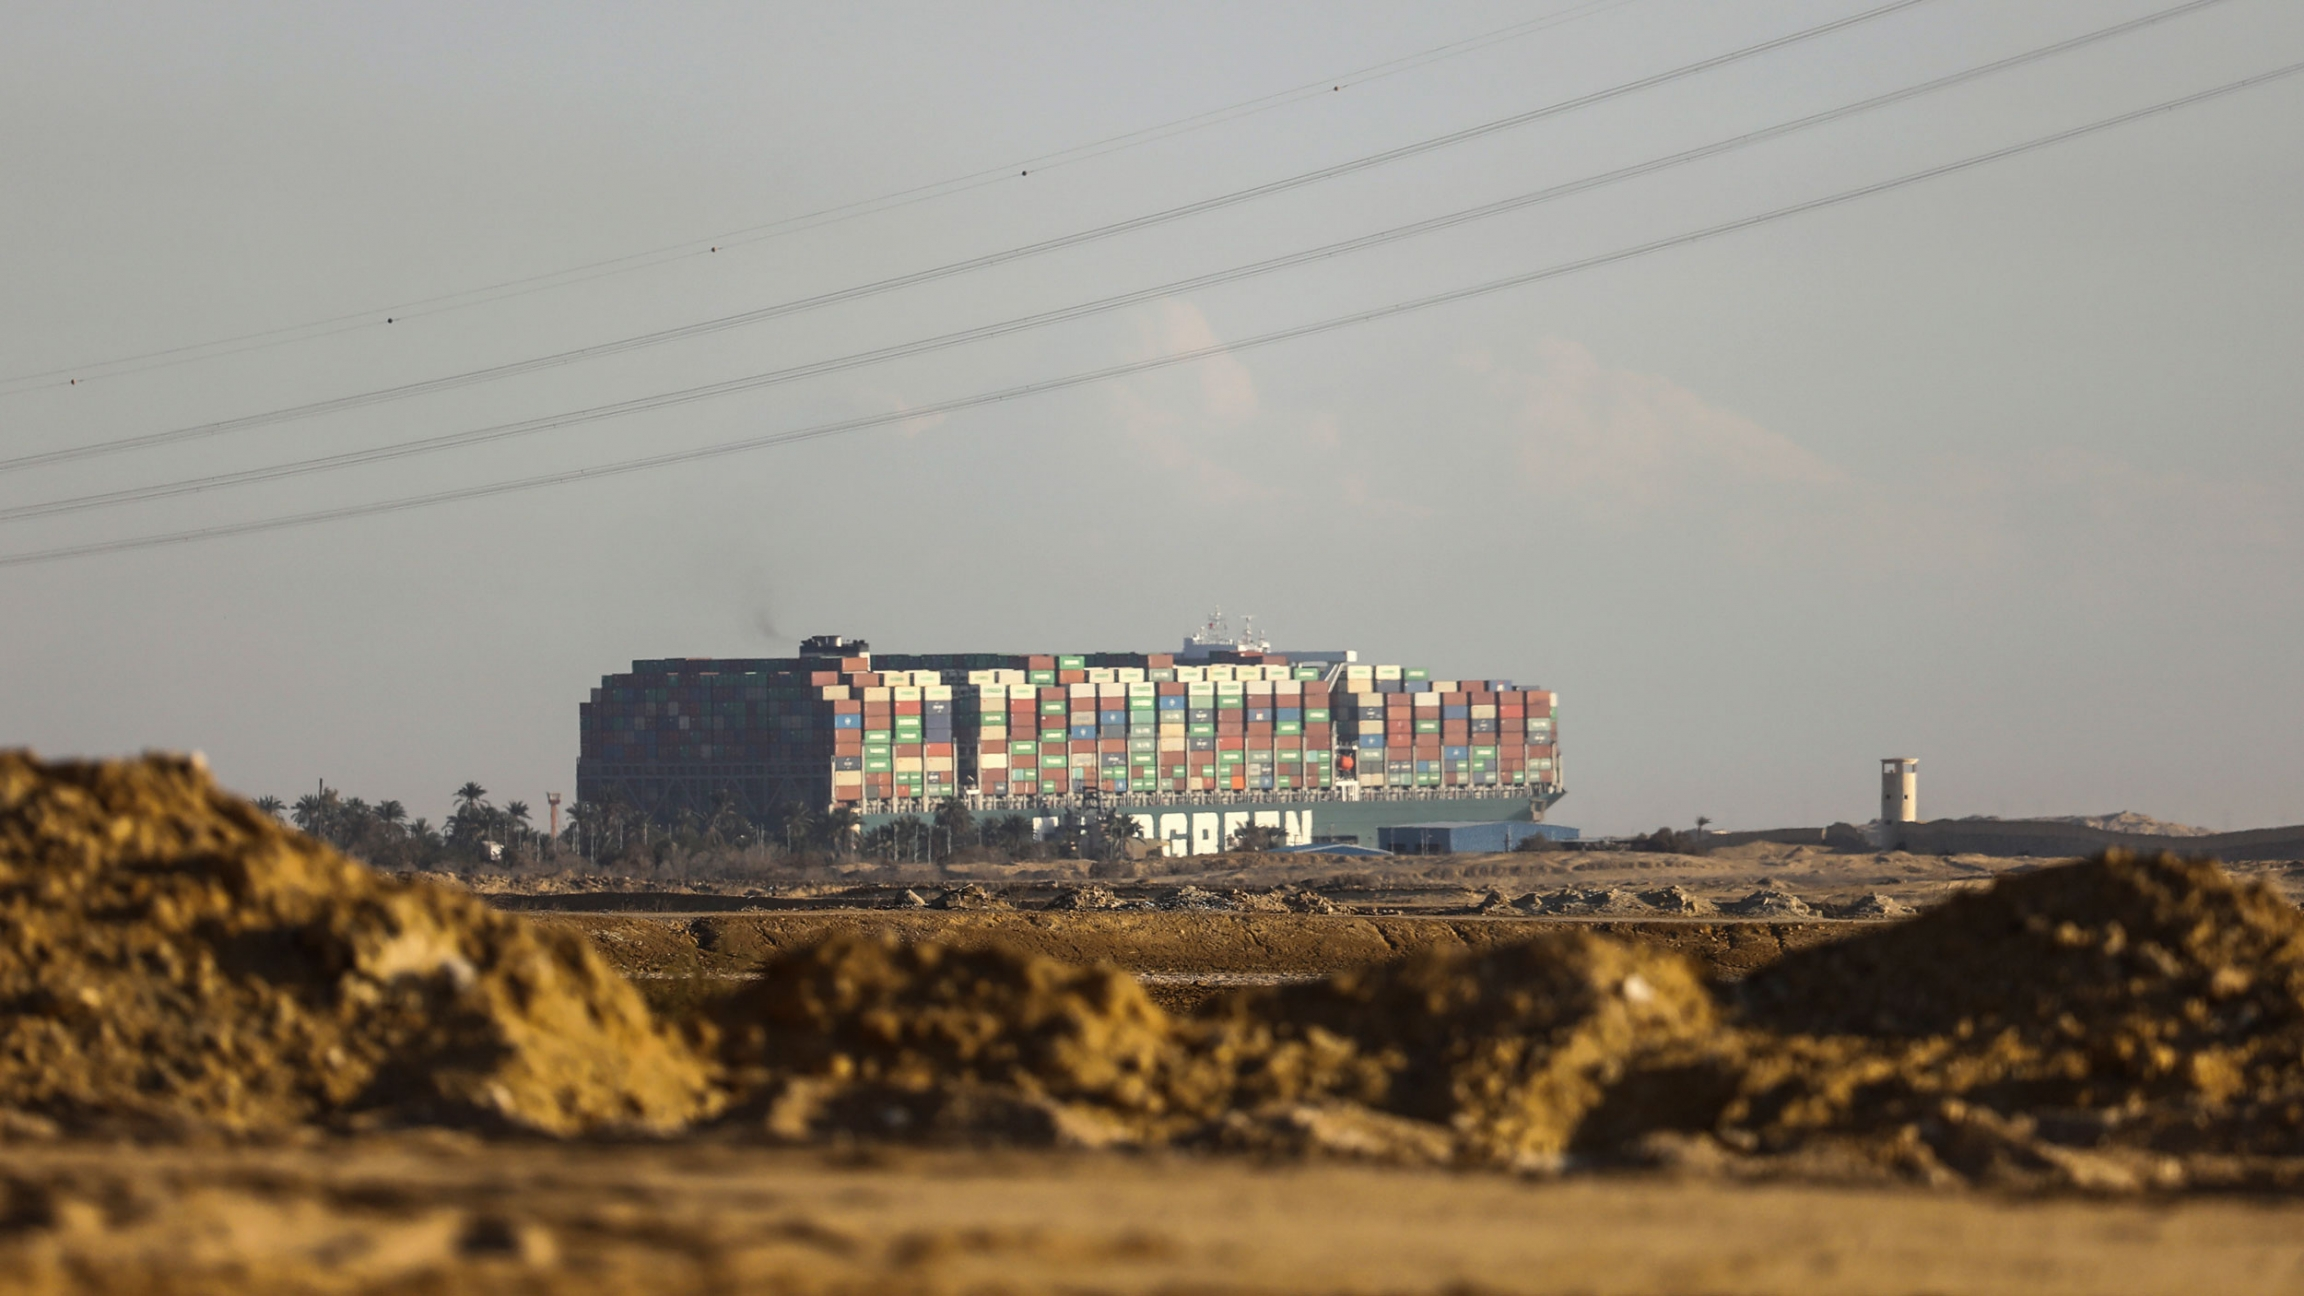 A large cargo ship is show in the distance towering over the sandy landscape with hundreds of containers stacked on top.